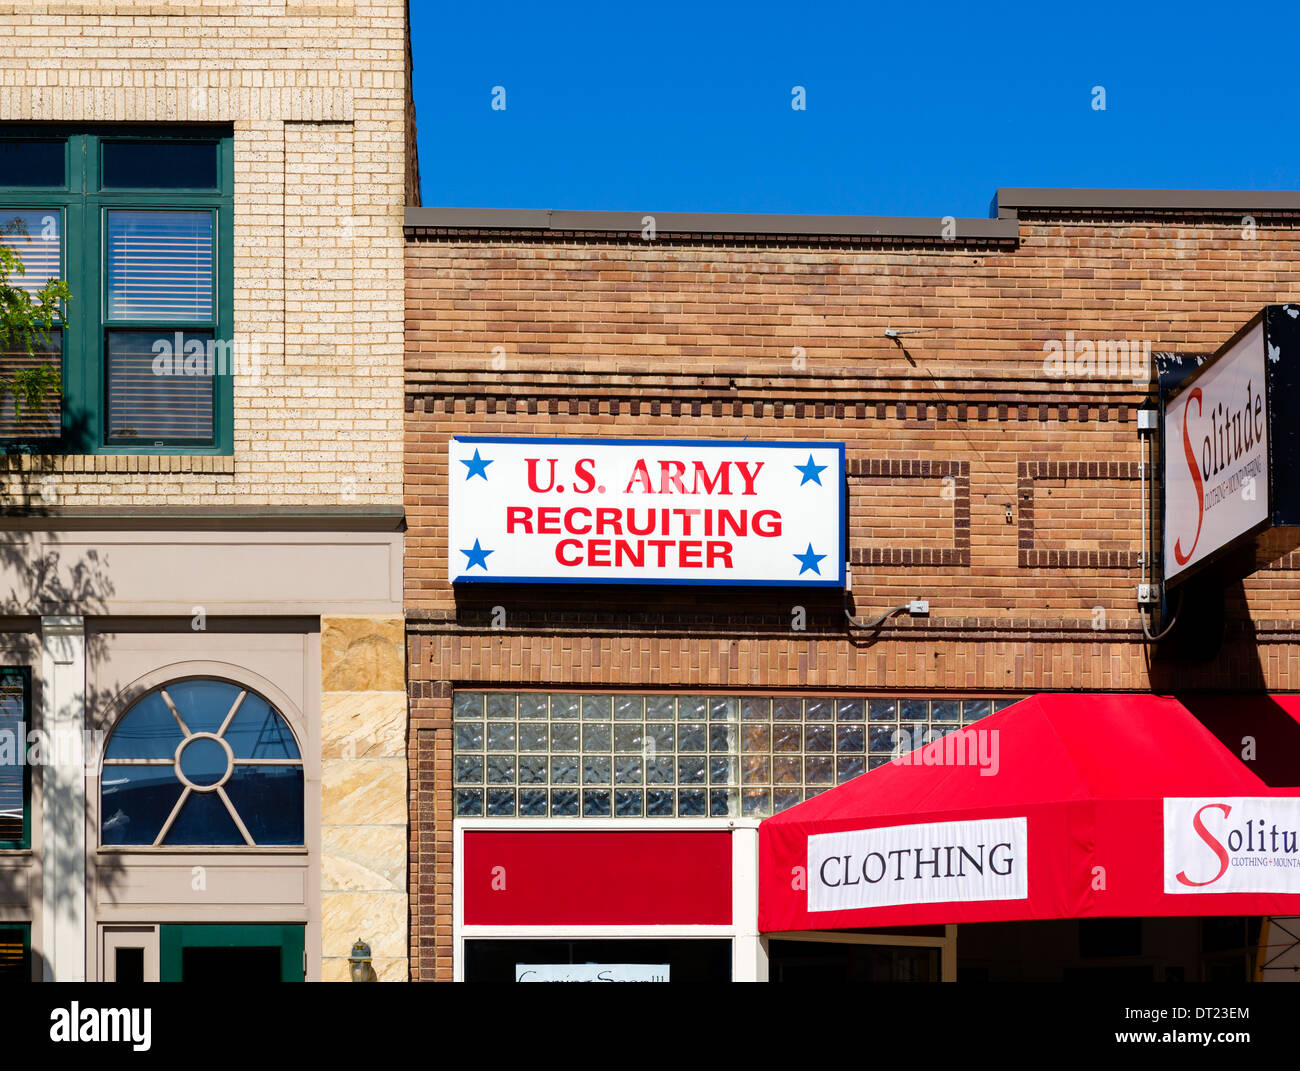 US Army Recruiting Center in downtown Sheridan, Wyoming, USA - Stock Image